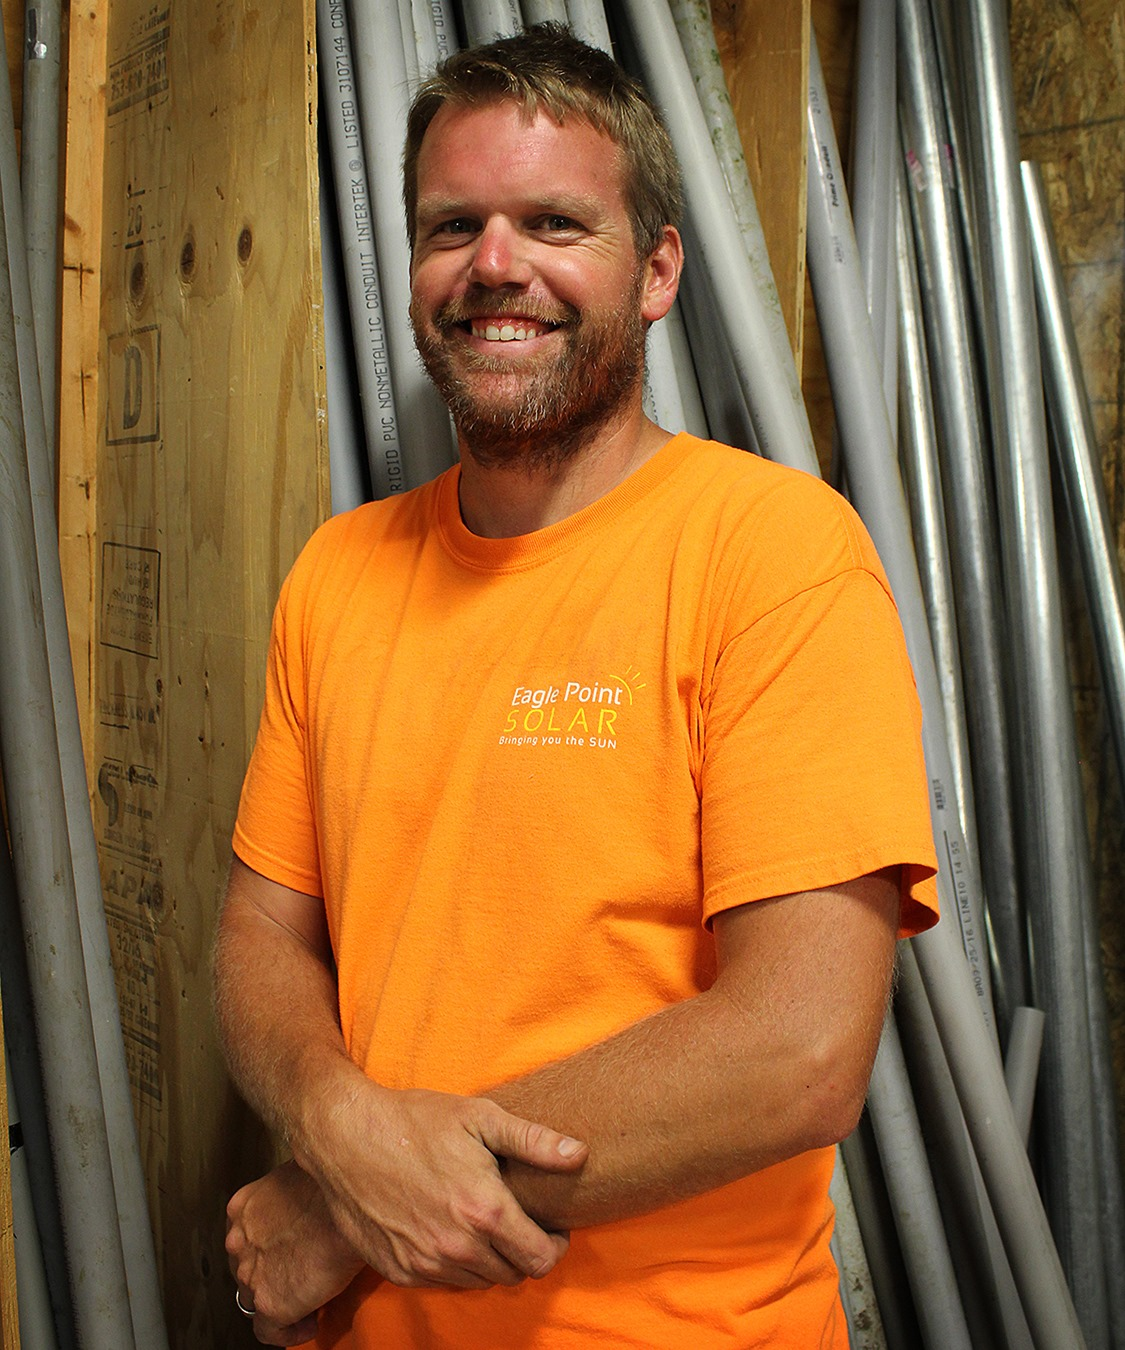 Matt is responsible for the electrical work associated with connecting a solar array to a utility meter